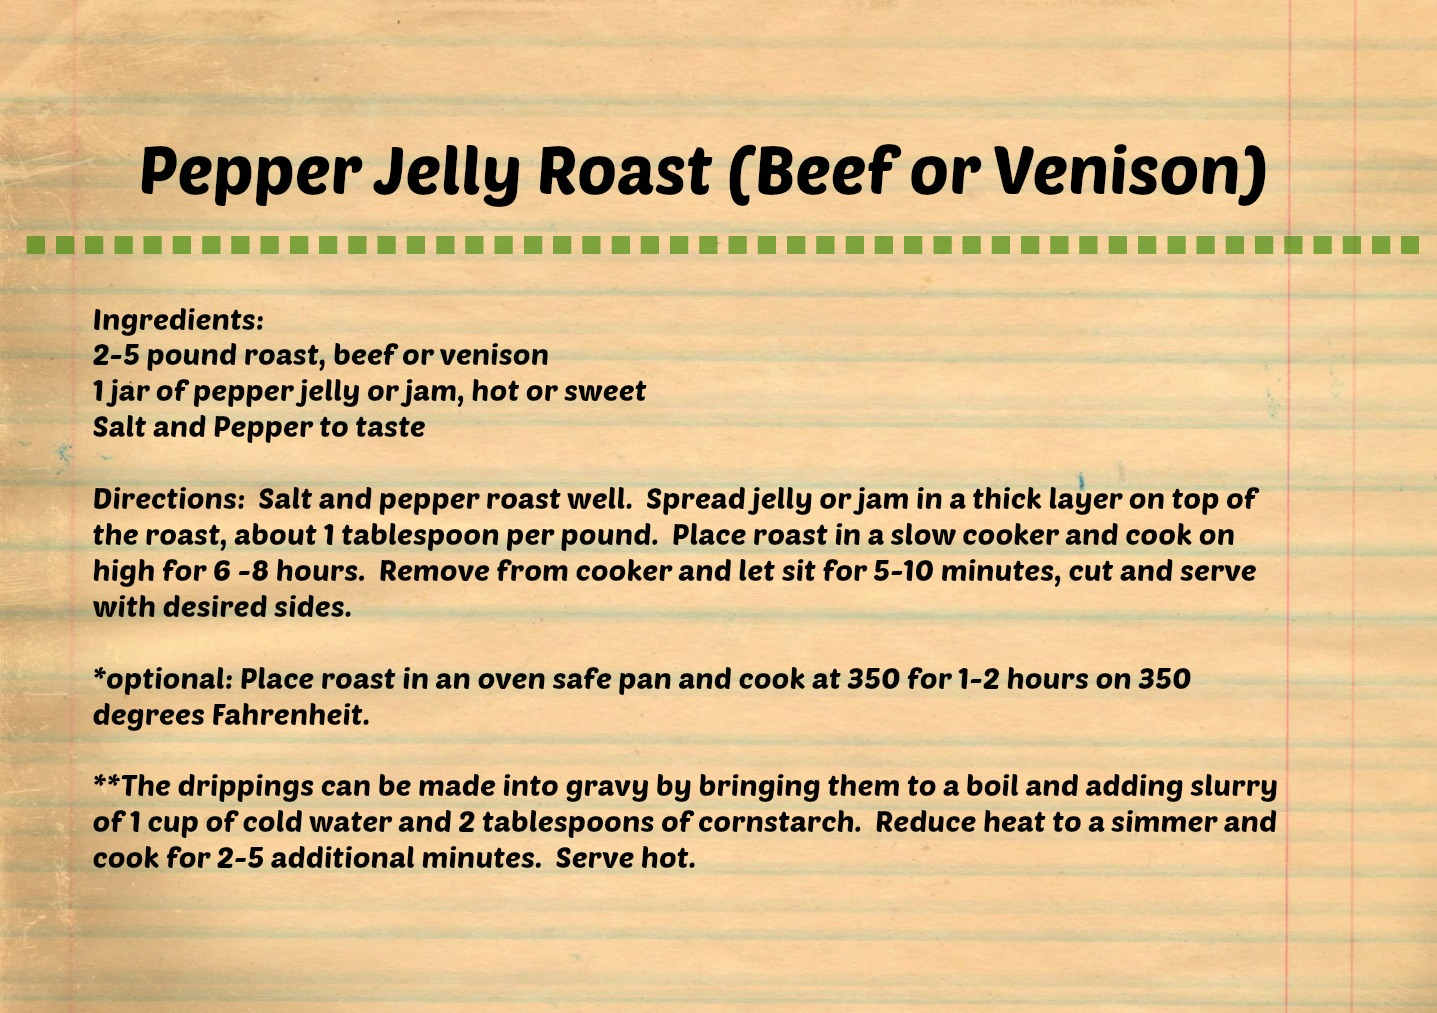 Pepper Jelly Roast-recipe.jpg